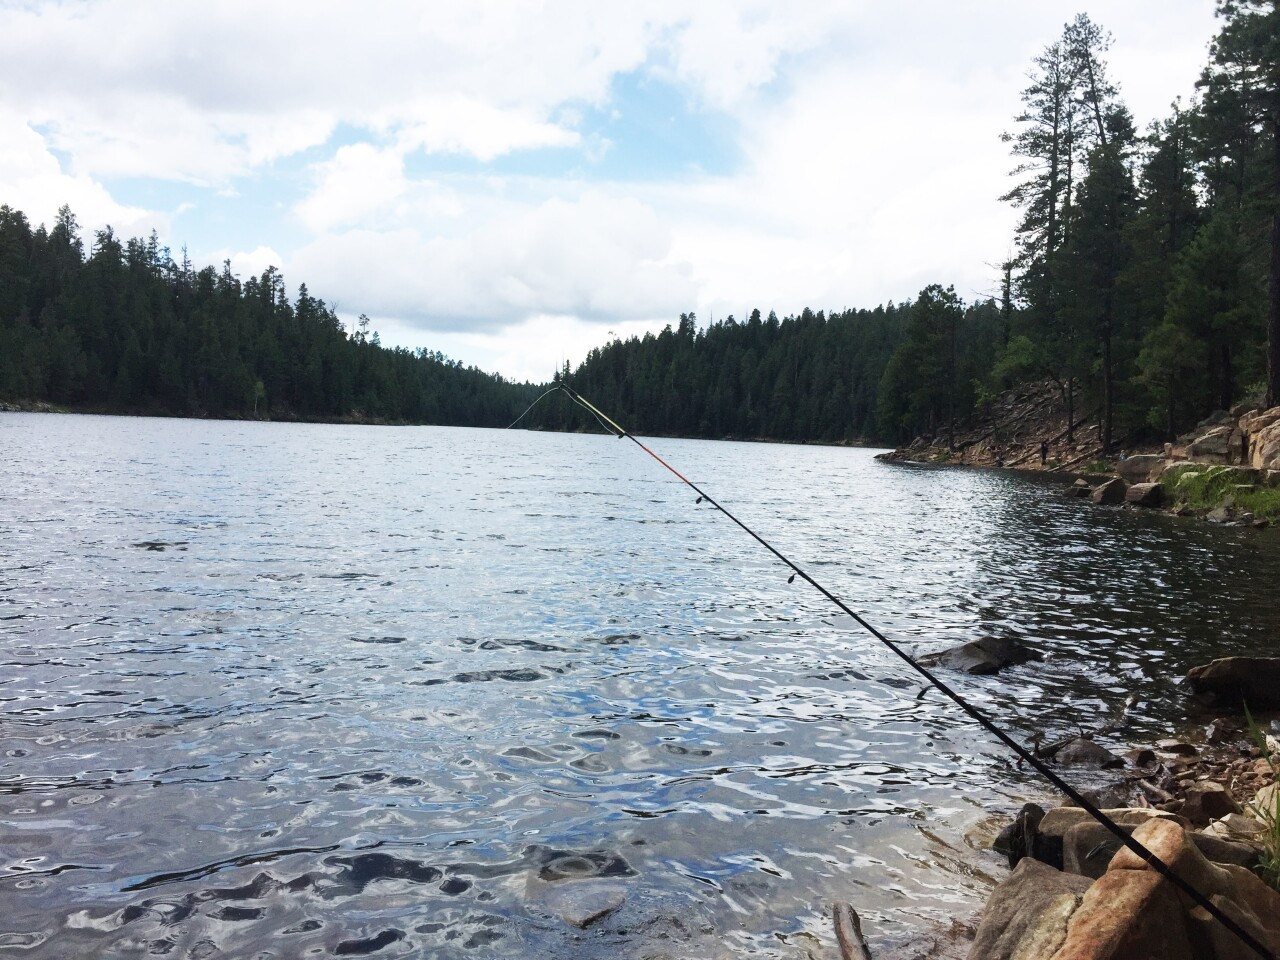 Five best places to fish this summer in northern Arizona